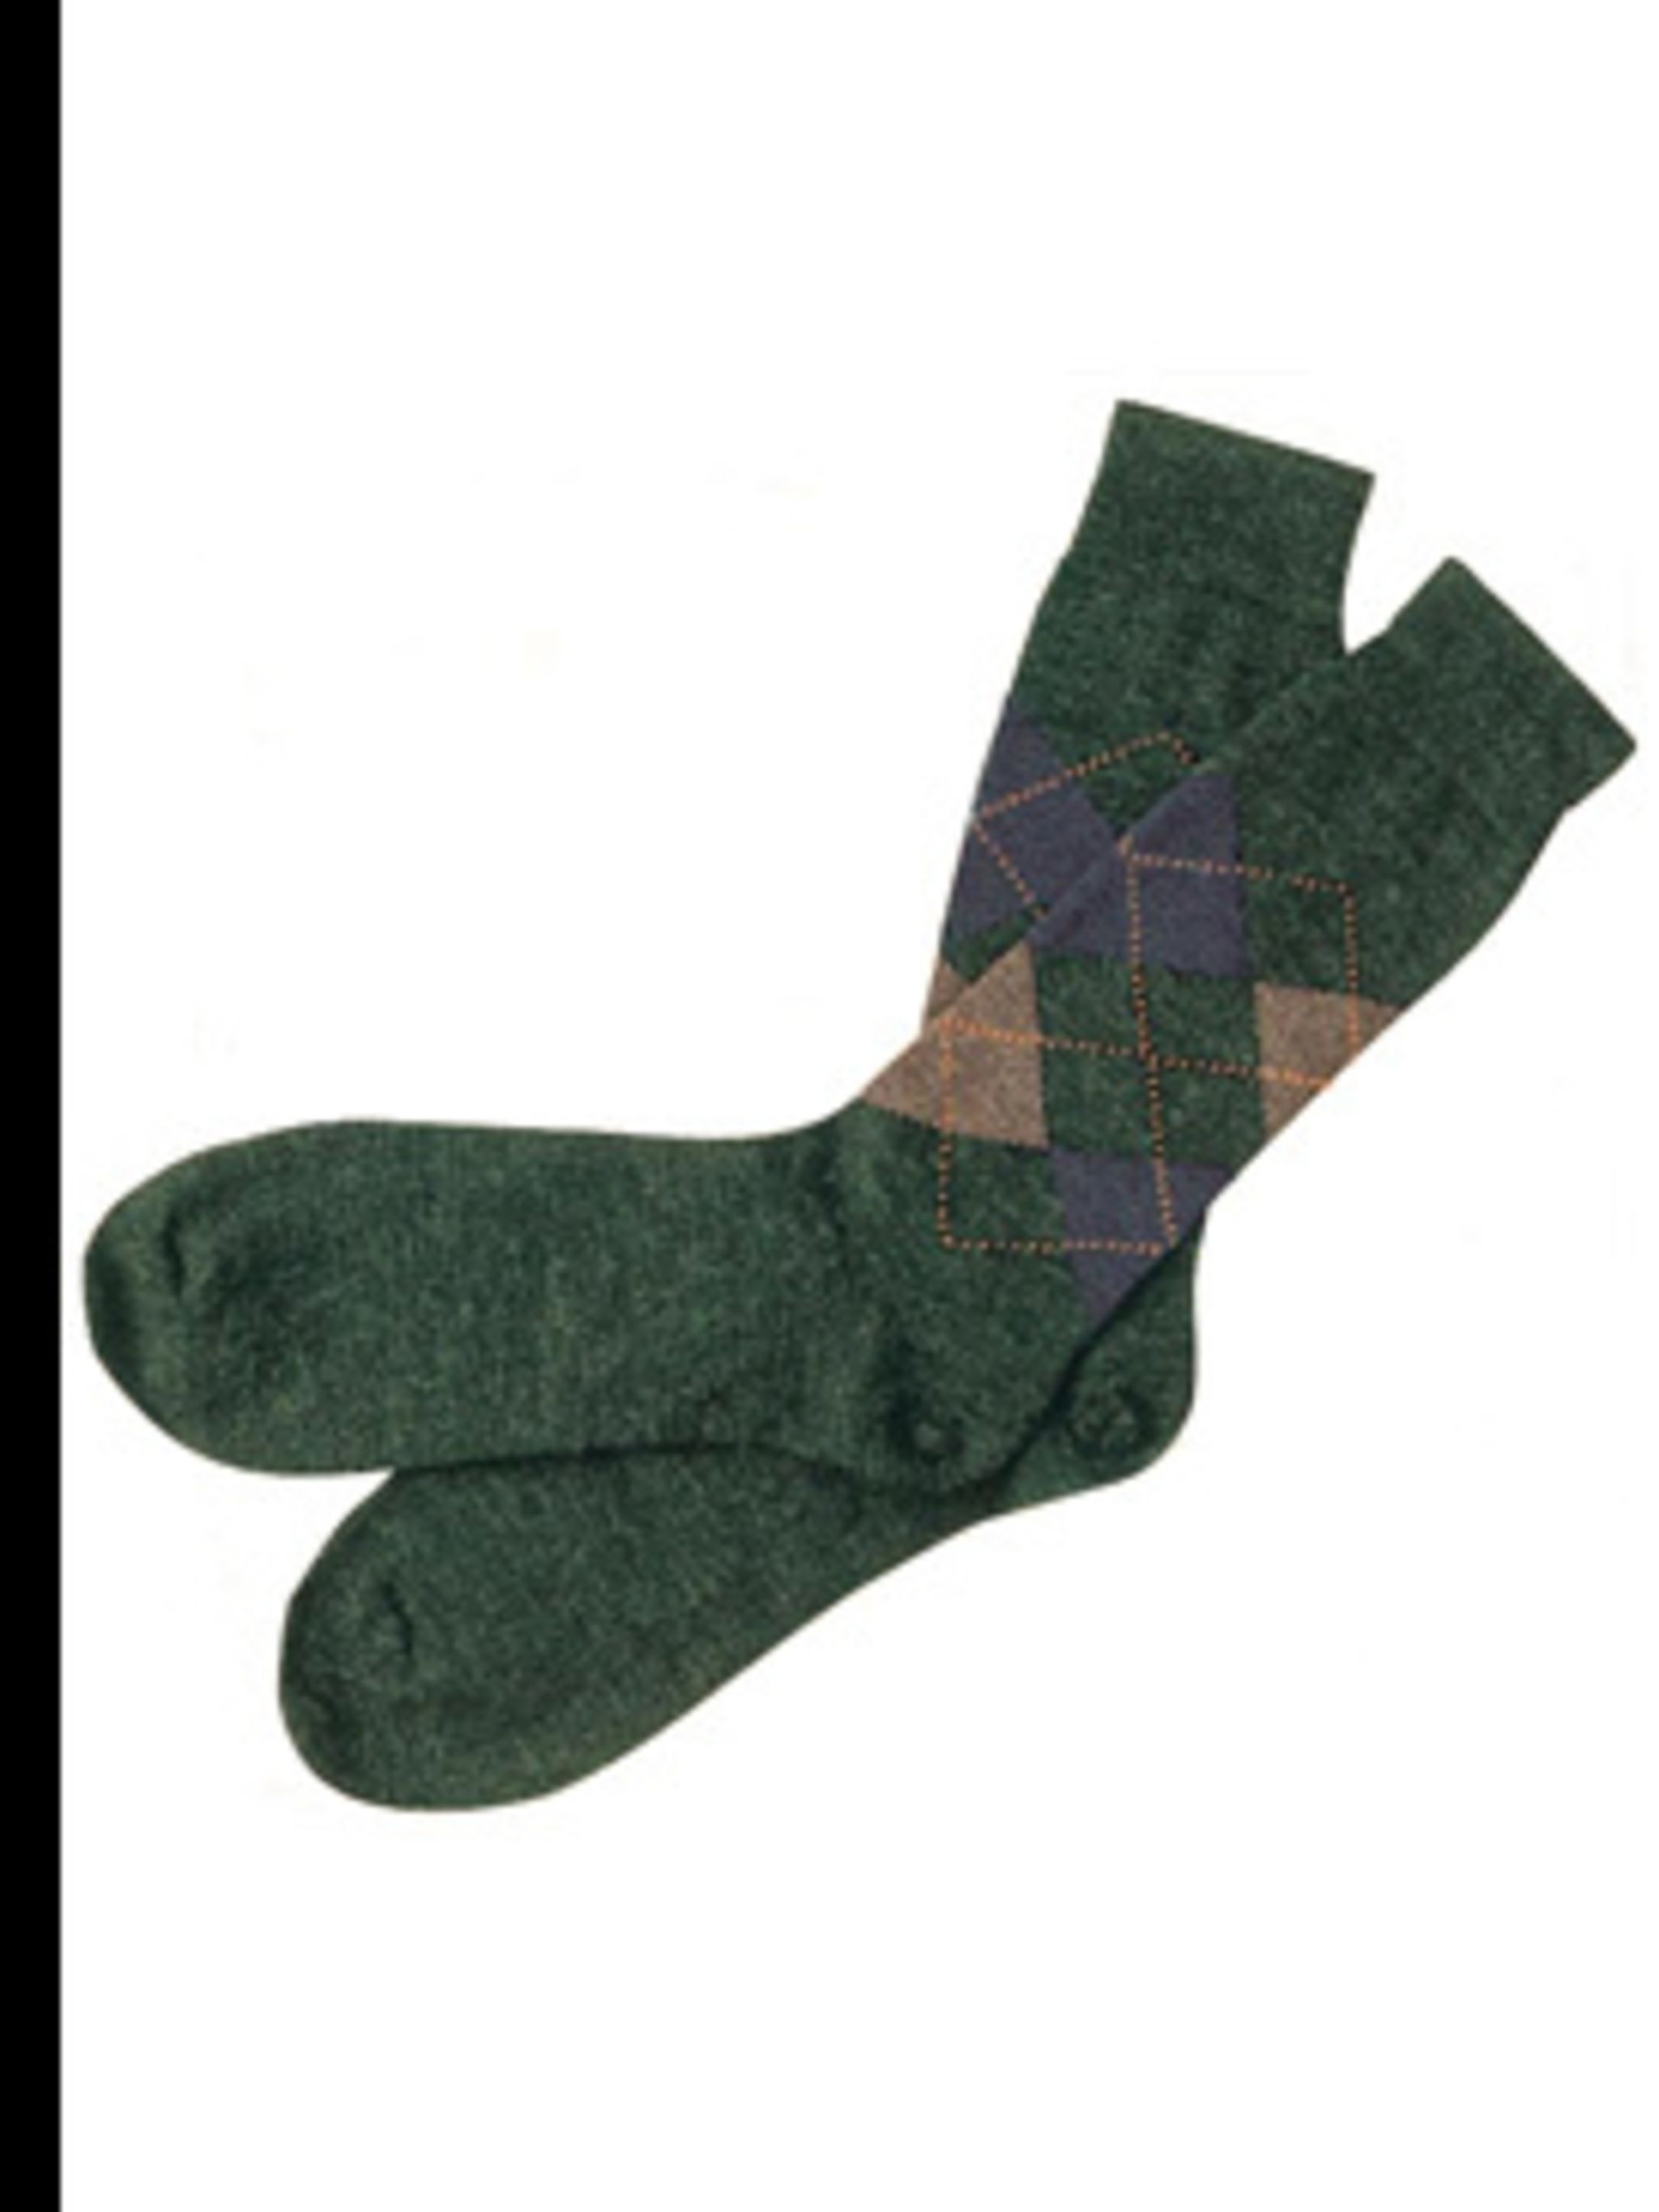 "<p>Argyle ankle socks, £8.95, by <a href=""http://www.barbourbymail.co.uk/newproduct.aspx?ProductStyleID=110666&CategoryID=1642"">Barbour</a></p>"